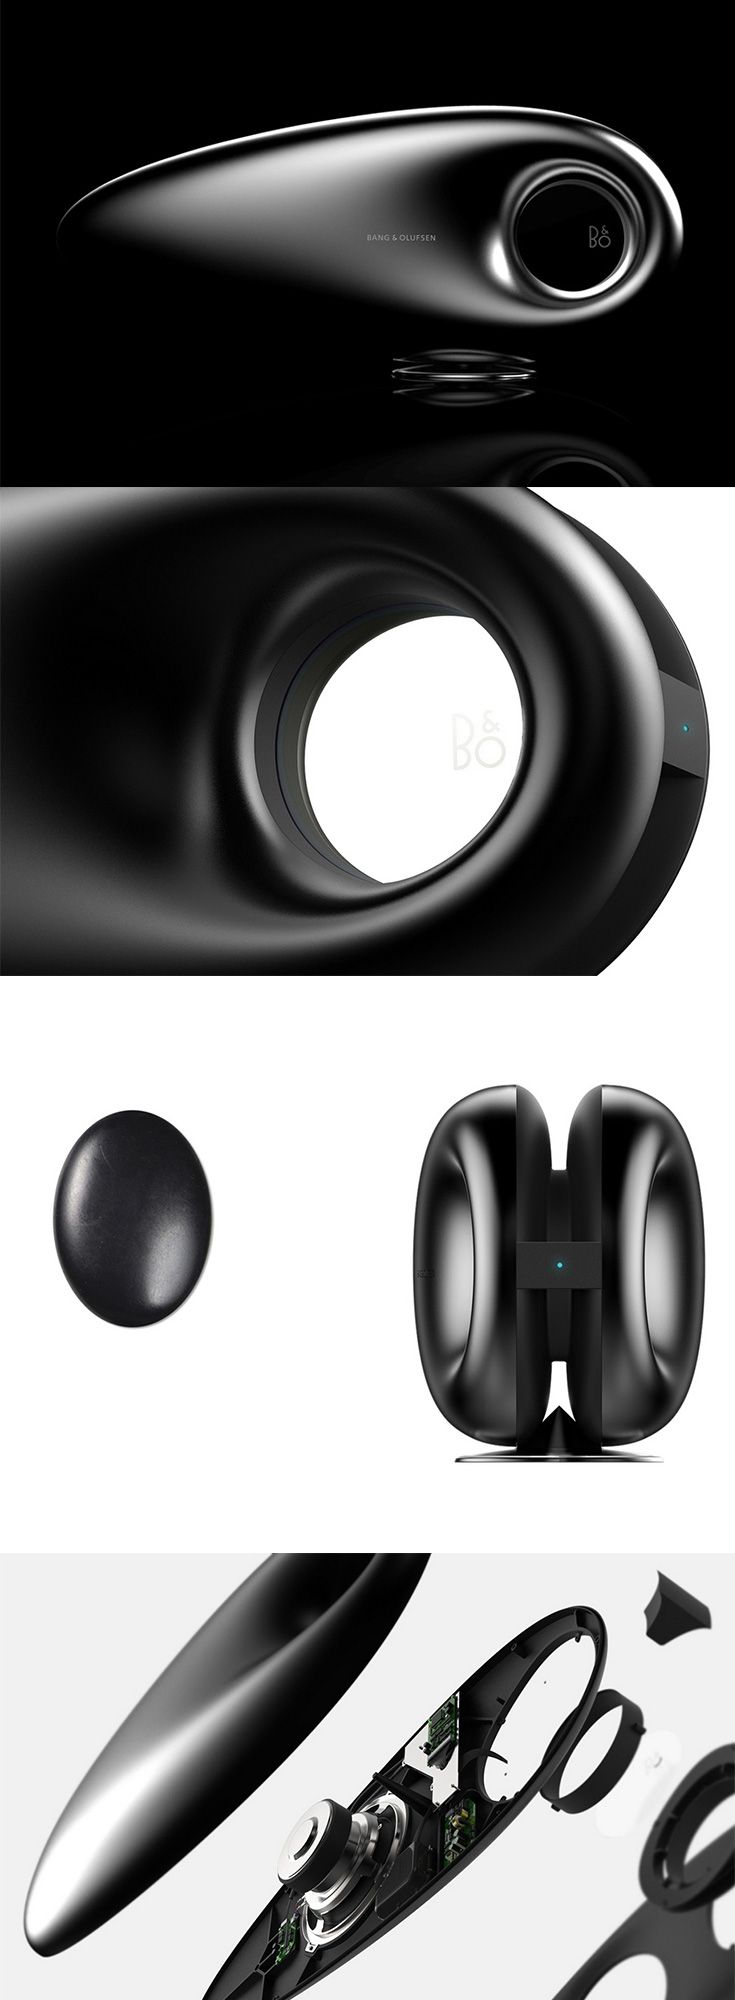 This 'Beosound Wireless Speaker' look like it's speeding faster than the speed of sound, it is a pretty neat hi-end audio speaker with a cut-out in the  center that spews beautifully delicious tunes in a 360° radius... READ MORE at Yanko Design !